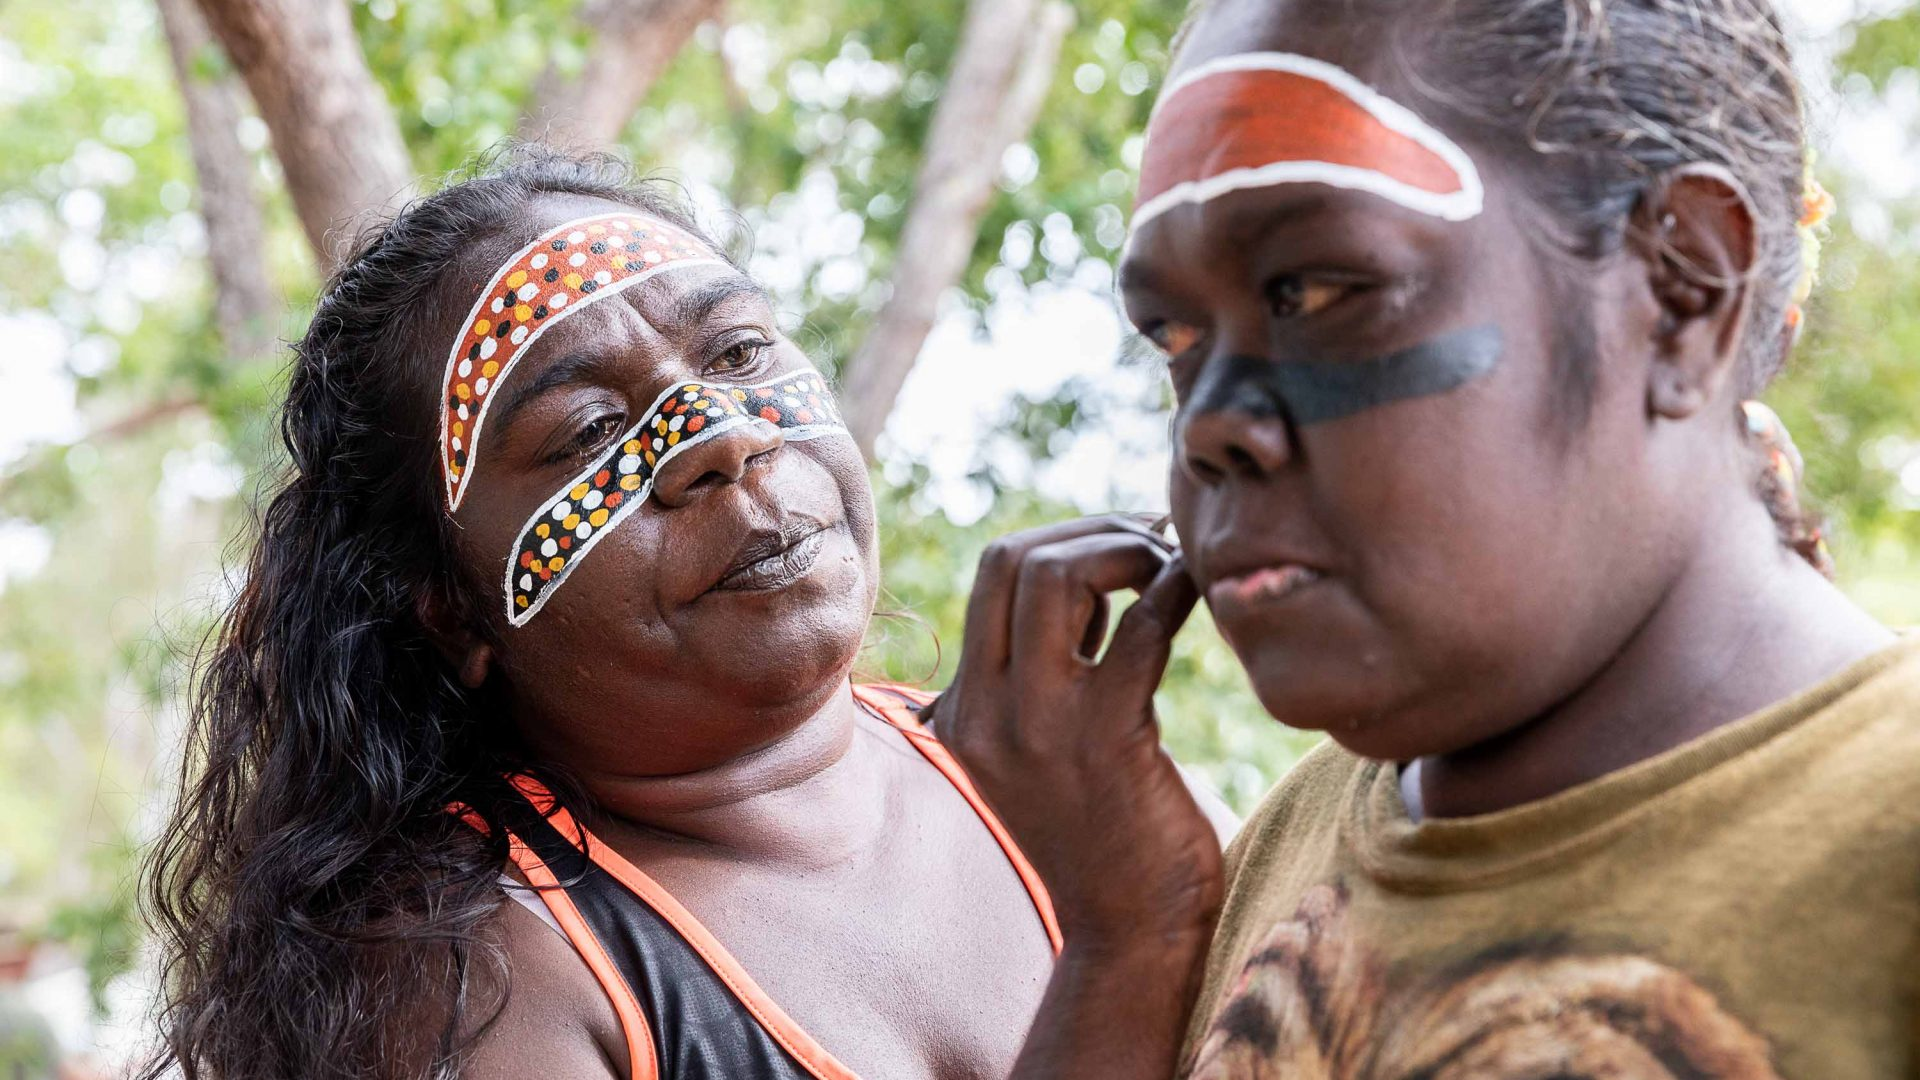 A woman paints the face of another woman.